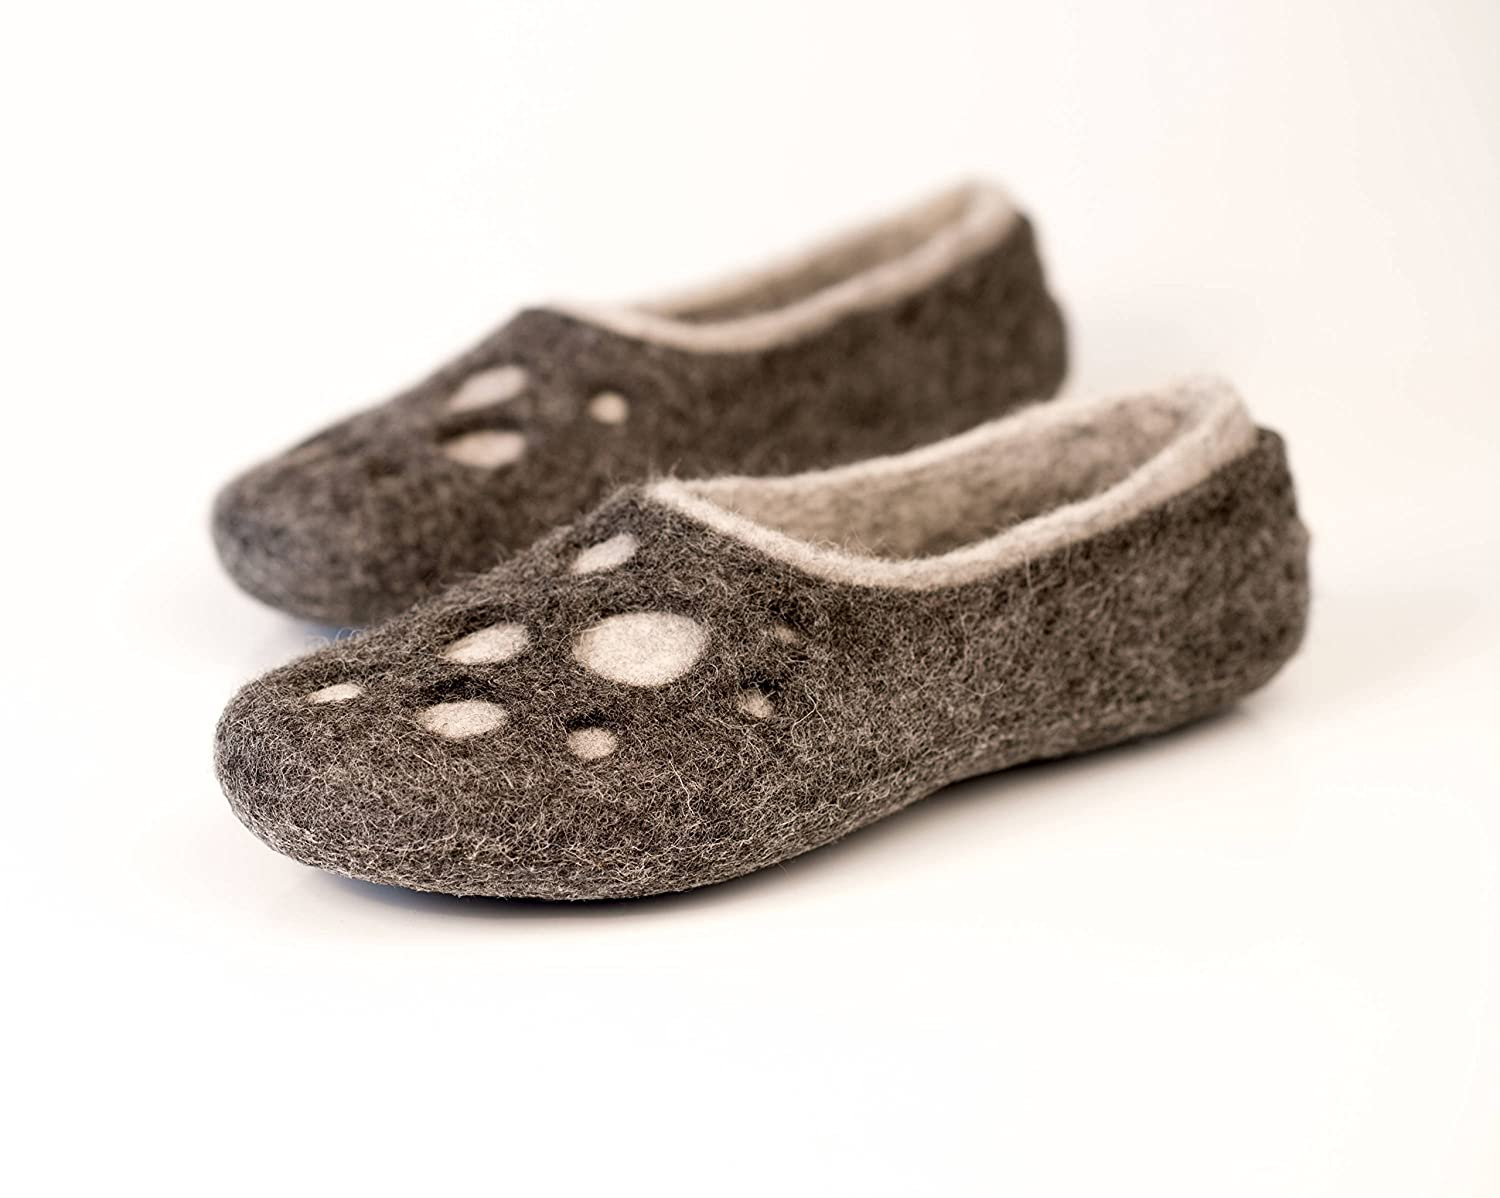 b747cd22d01dd Moon Craters grey felted wool slippers for women, Handmade warm home ...